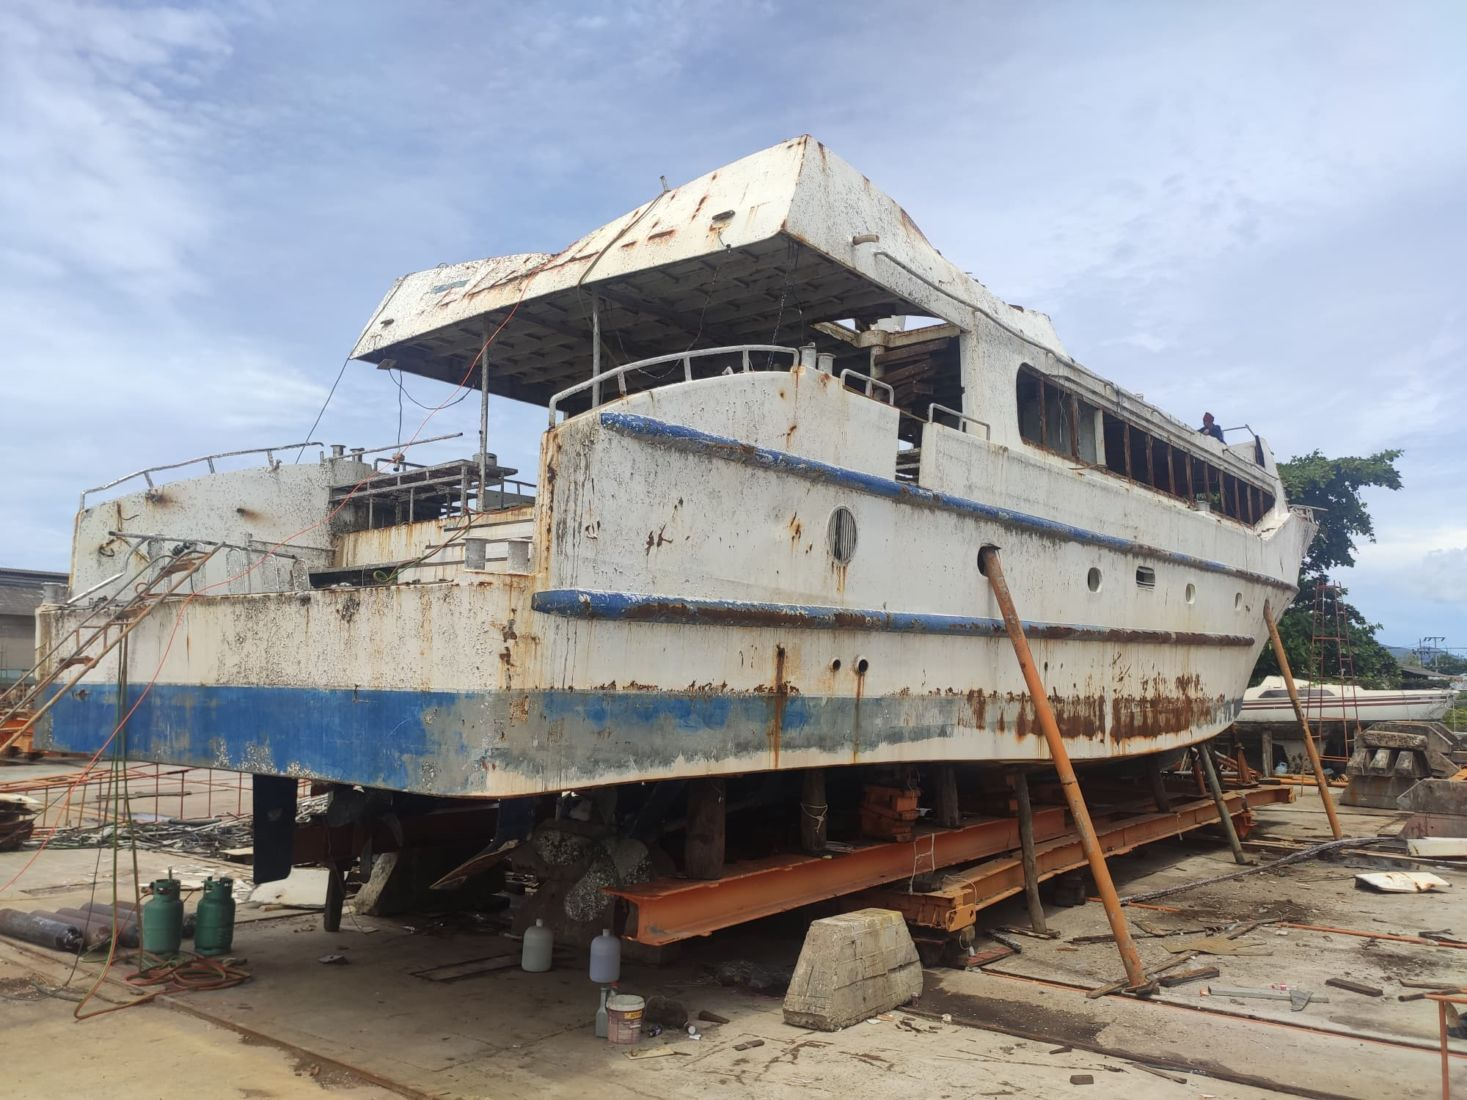 Phuket's killer boat Phoenix ripped apart for scrap metal | Thaiger